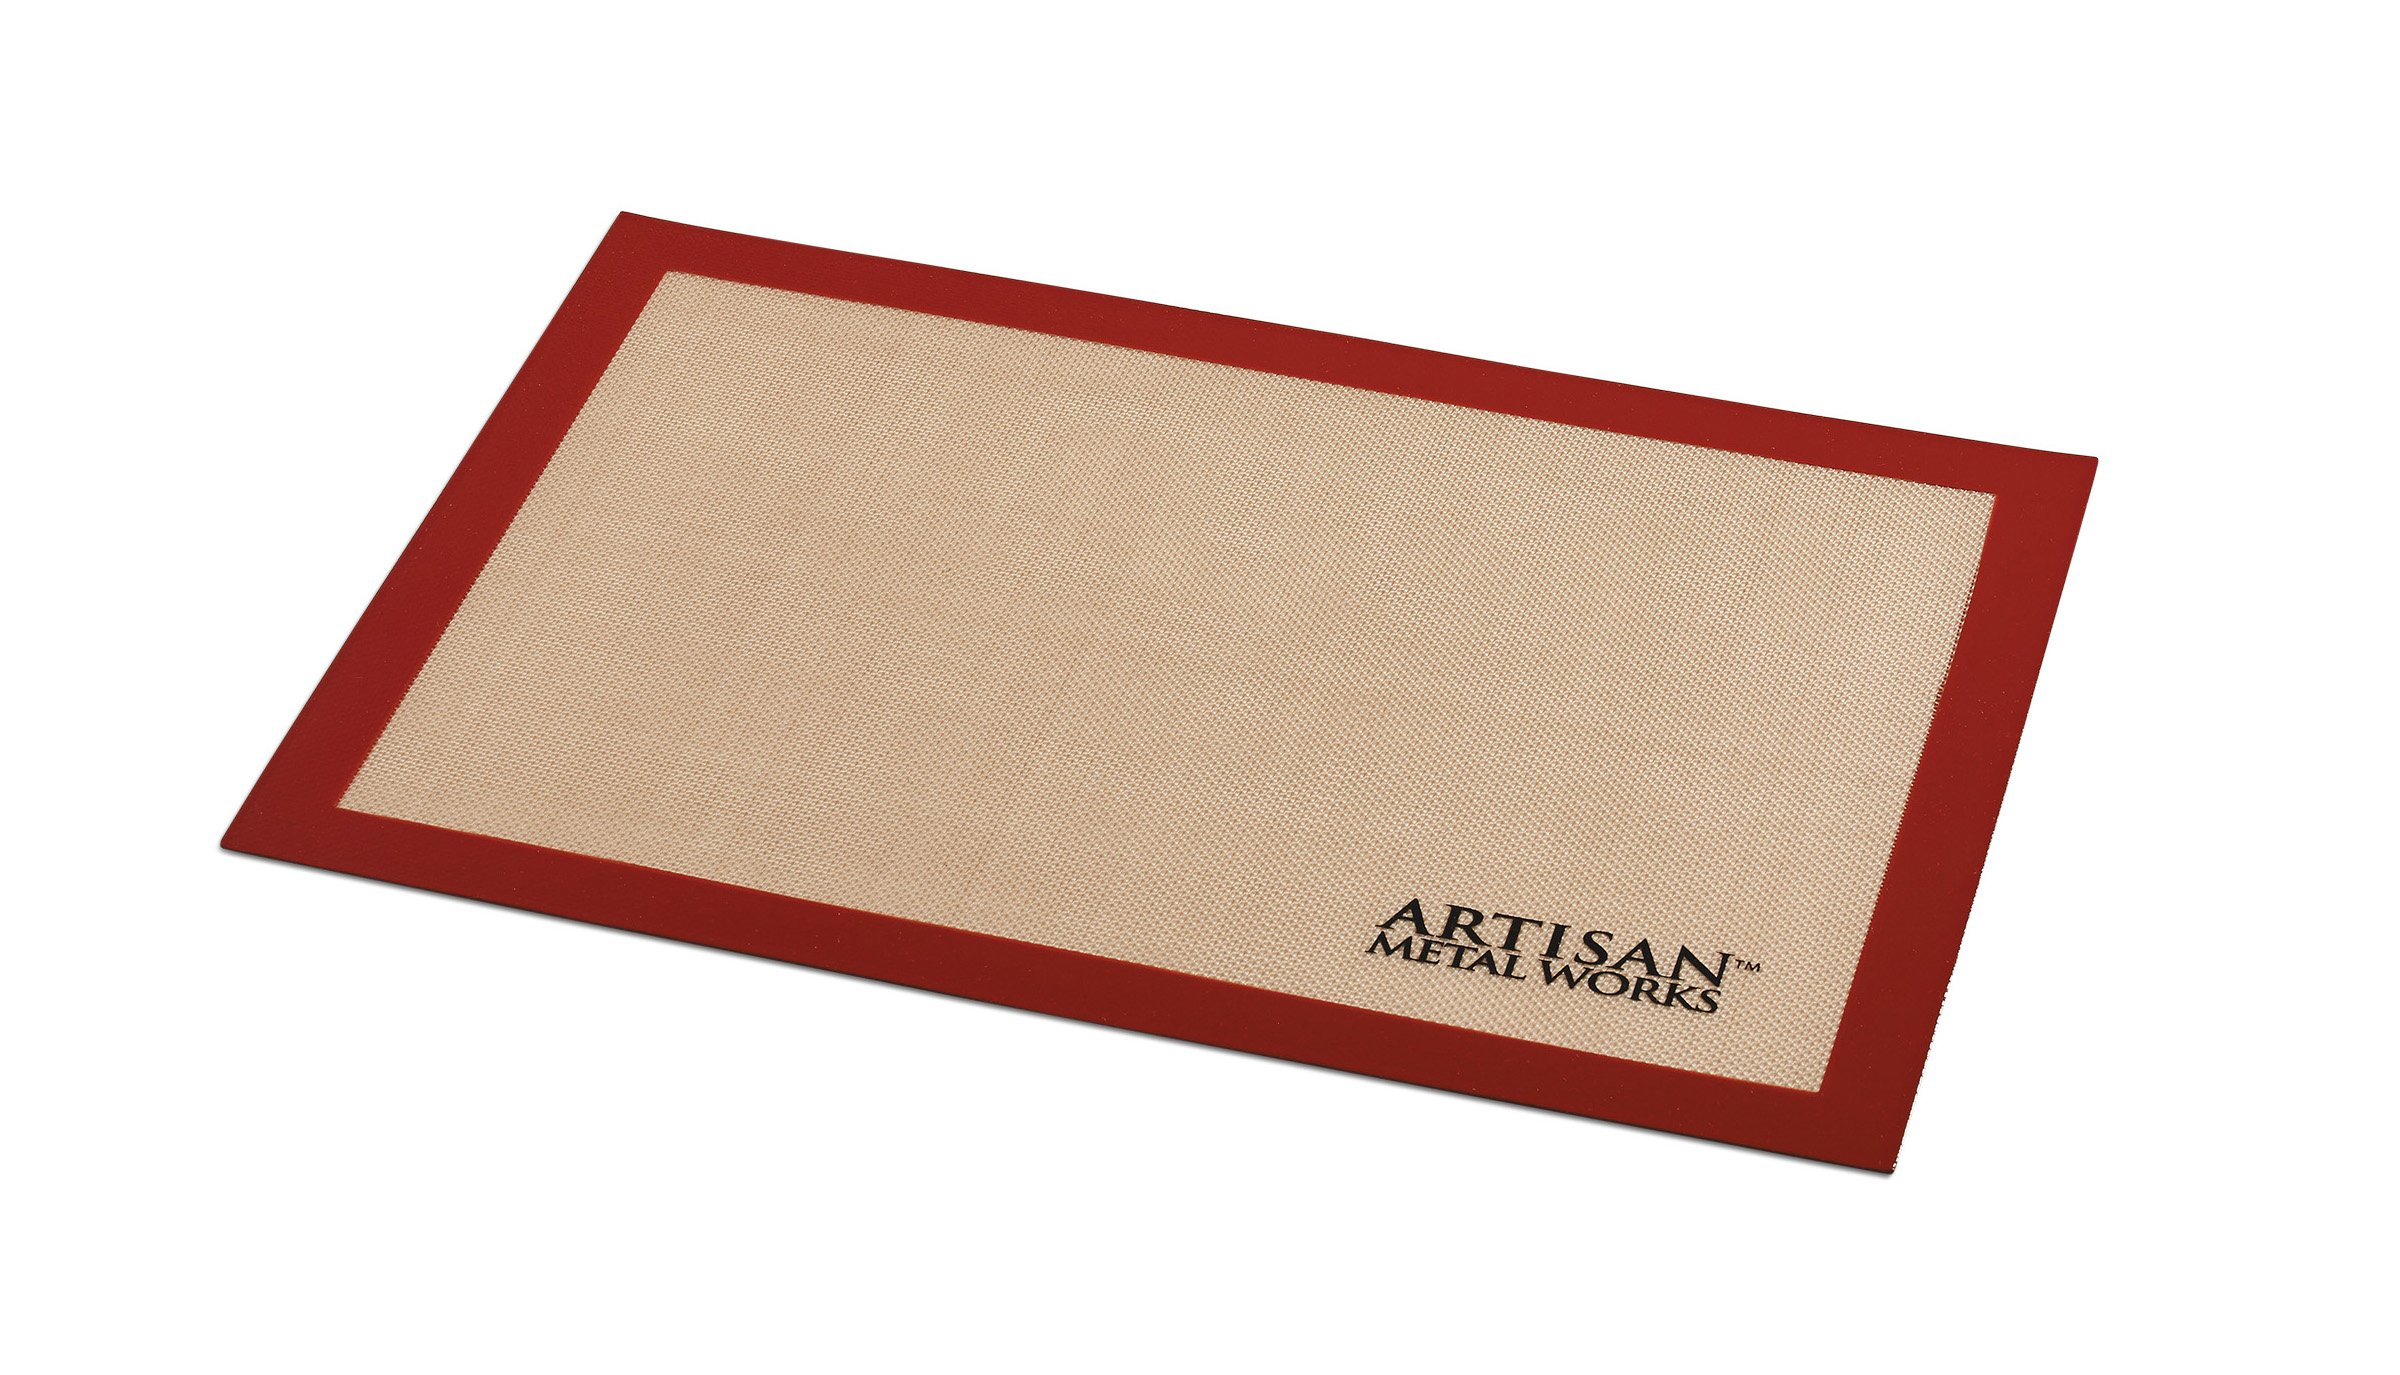 Artisan Silicone Baking Mat for 2/3 Size Cookie Sheet with Red Border, 18.75 x 13 inches by Artisan (Image #2)